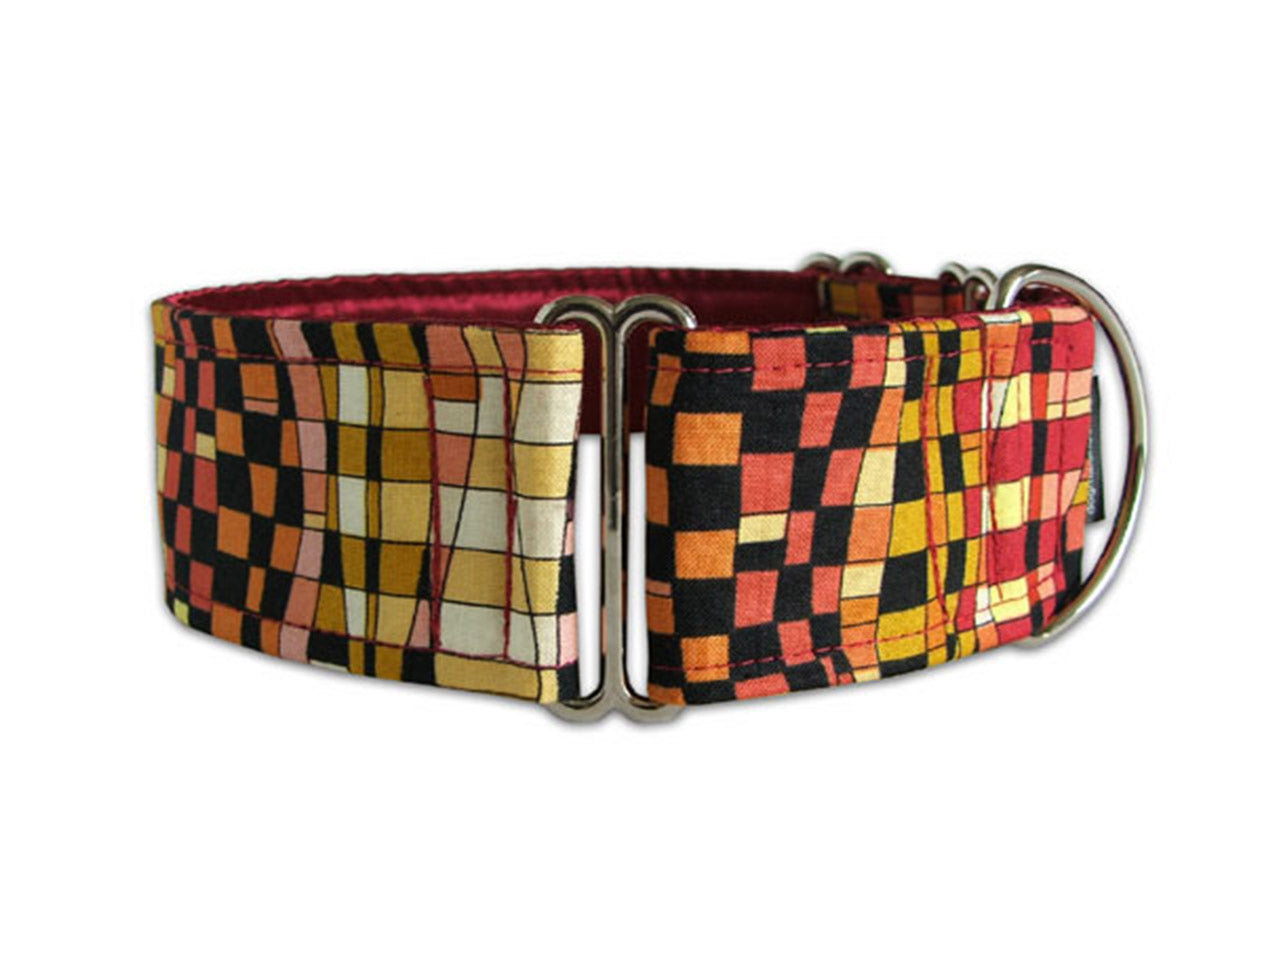 Funky check pattern in shades of red and black is cool for any pup with a bit of attitude!